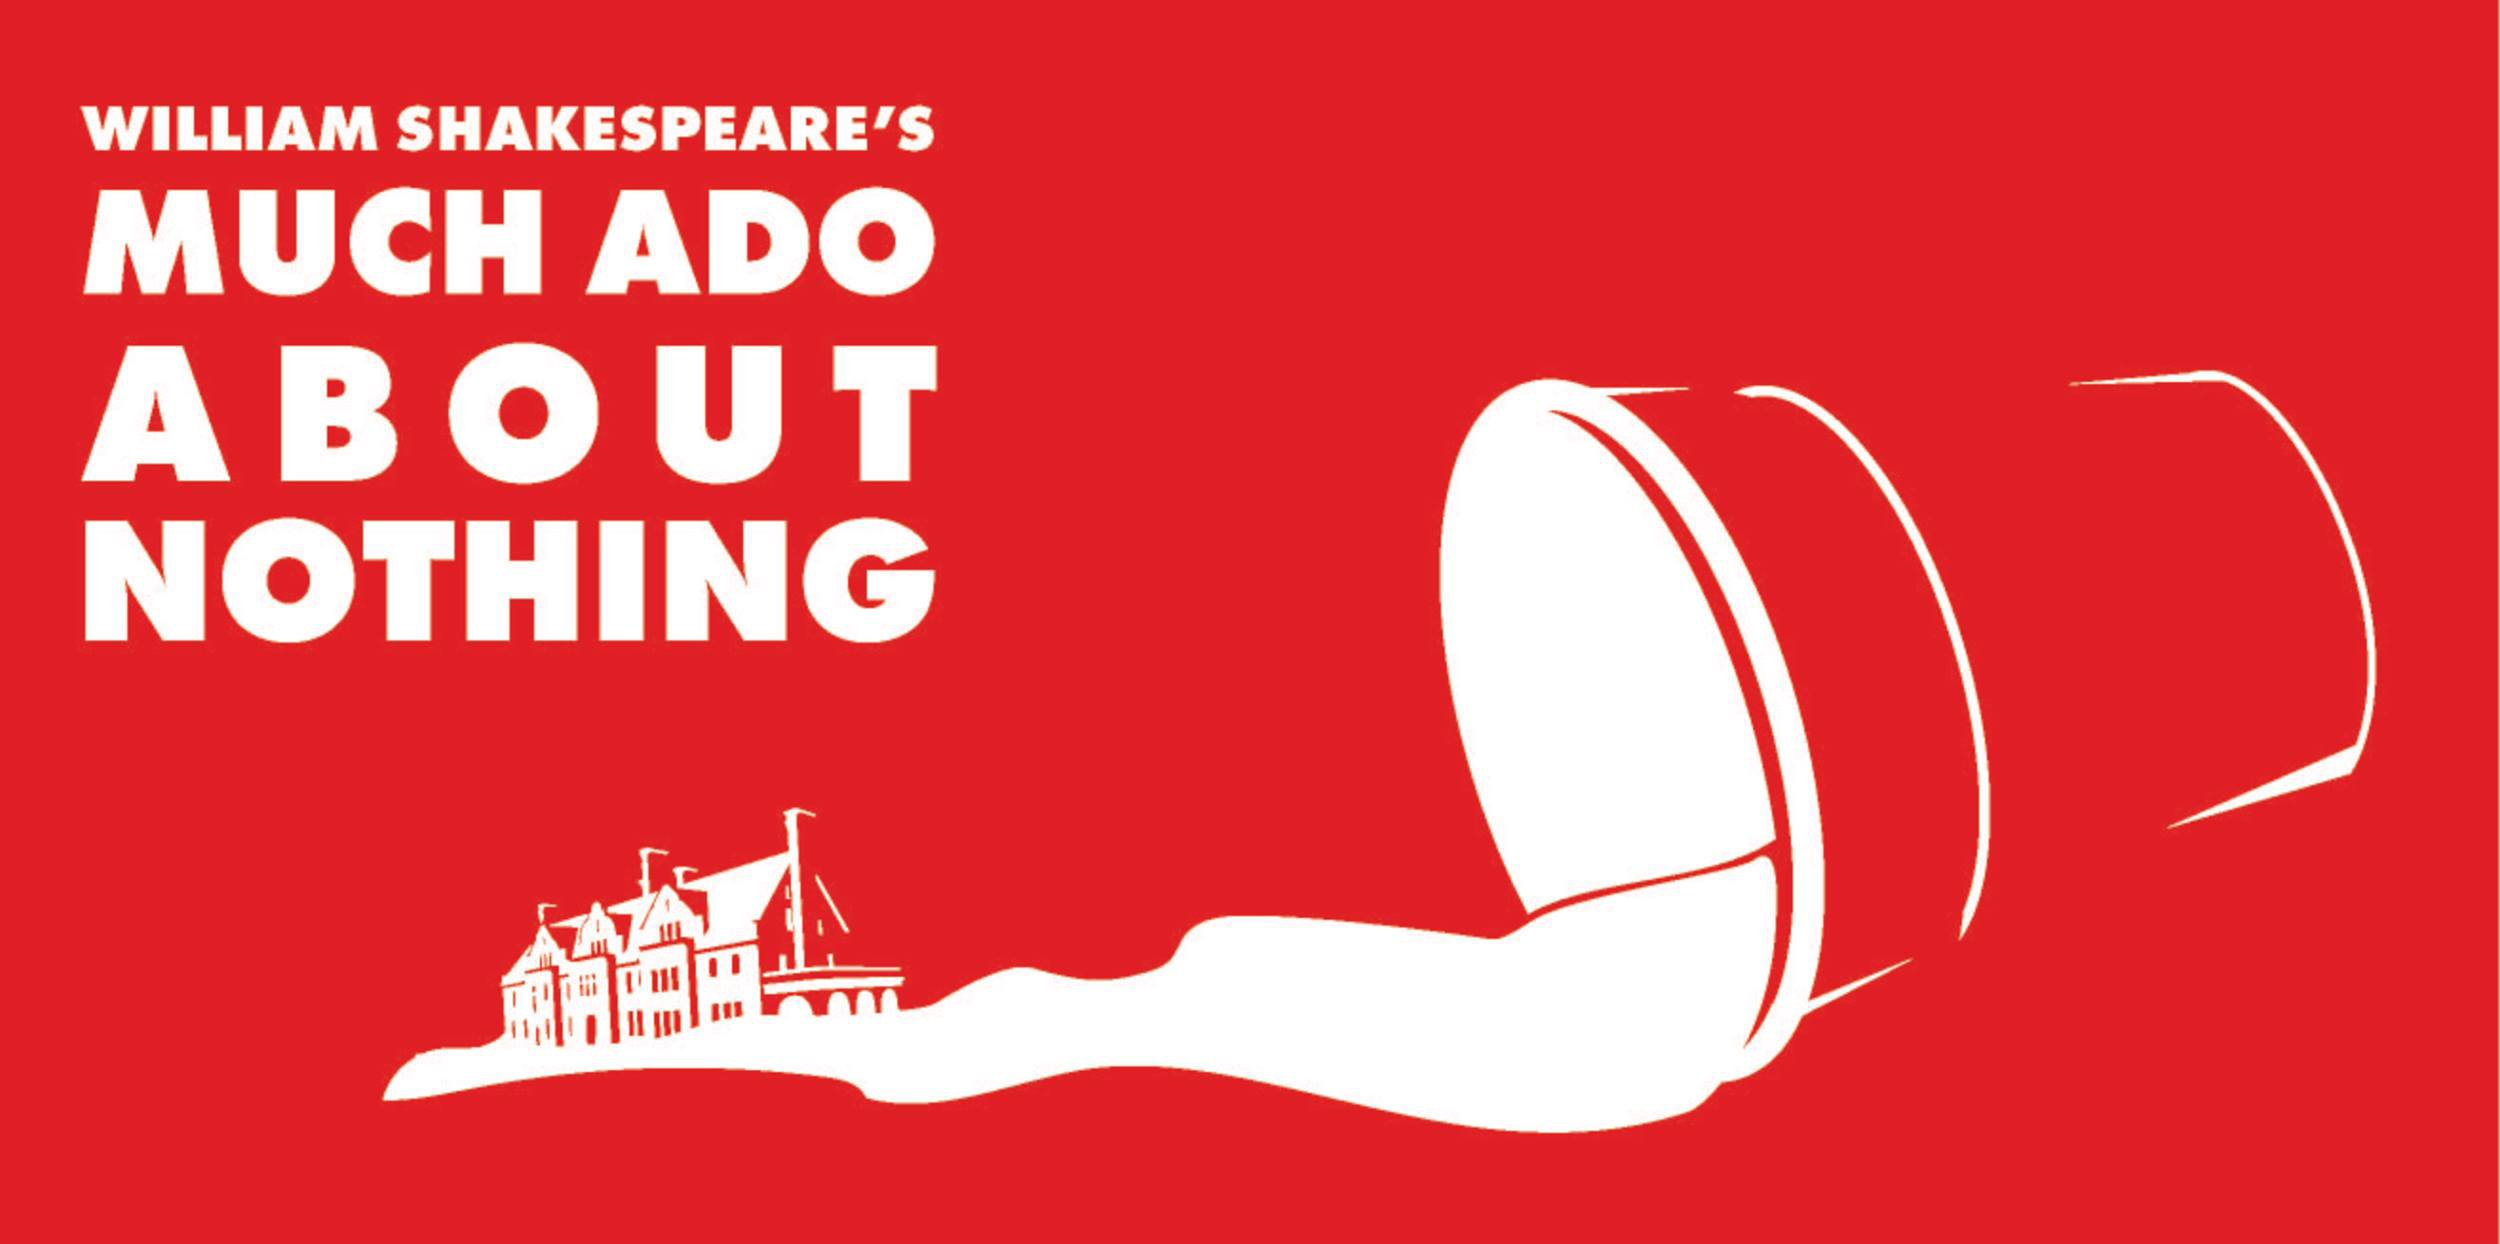 Stage 2 Presents Much Ado About Nothing At Glensheen Glensheen